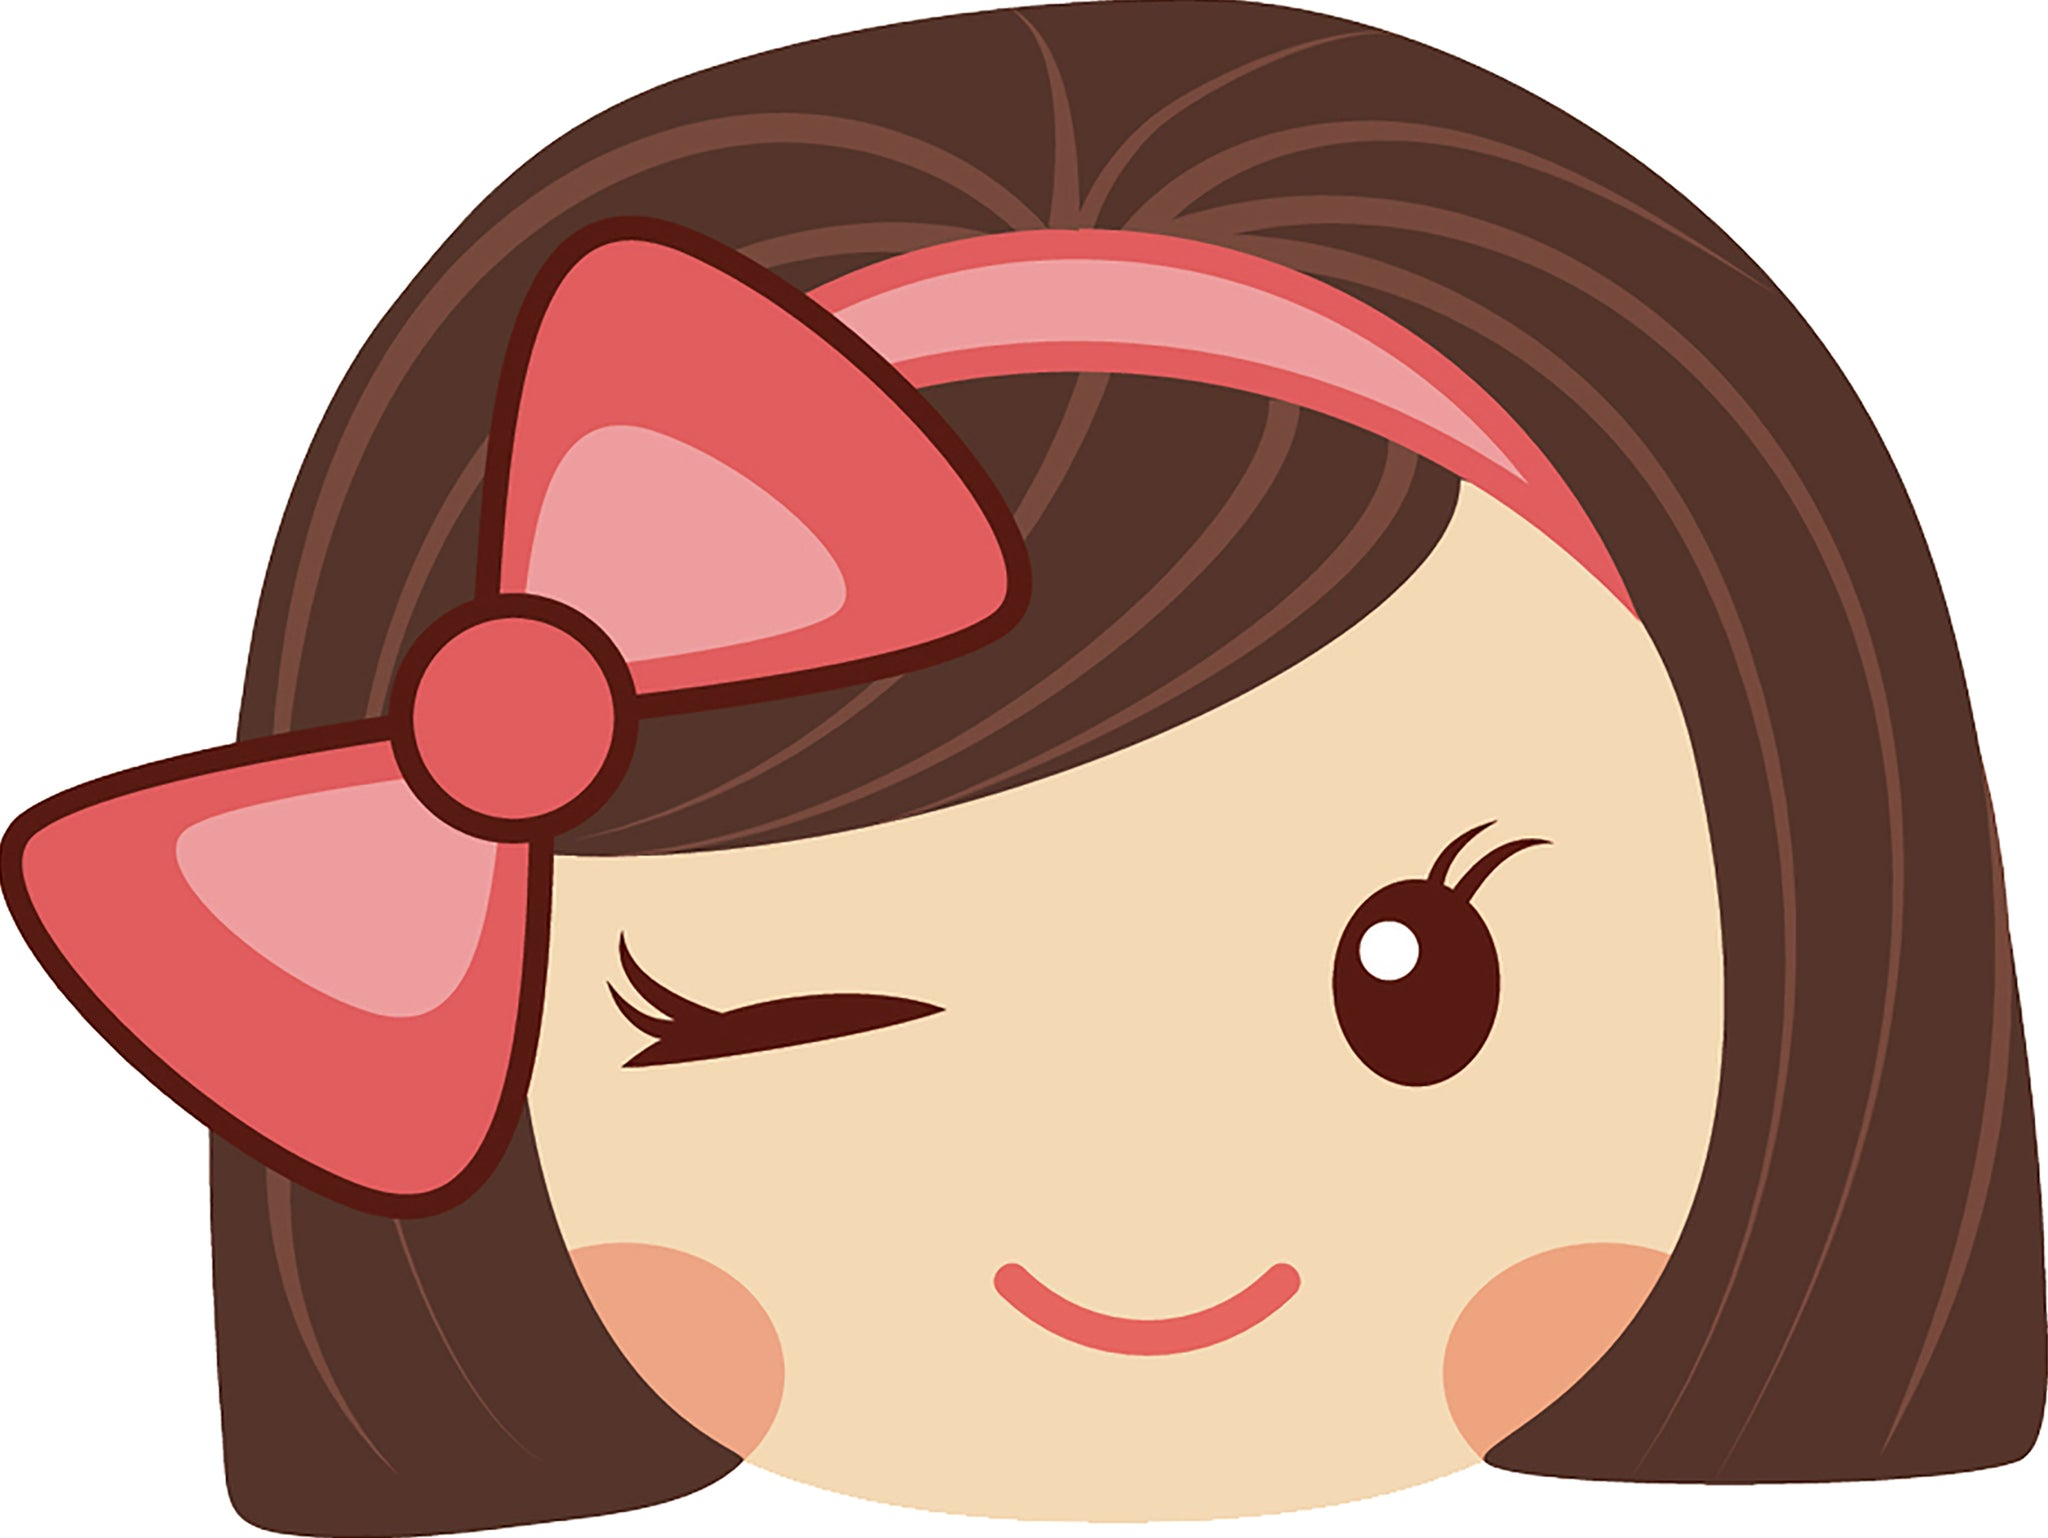 Sweet Little Kawaii School Girl with Pink Bow Emoji #6 Vinyl Decal Sticker